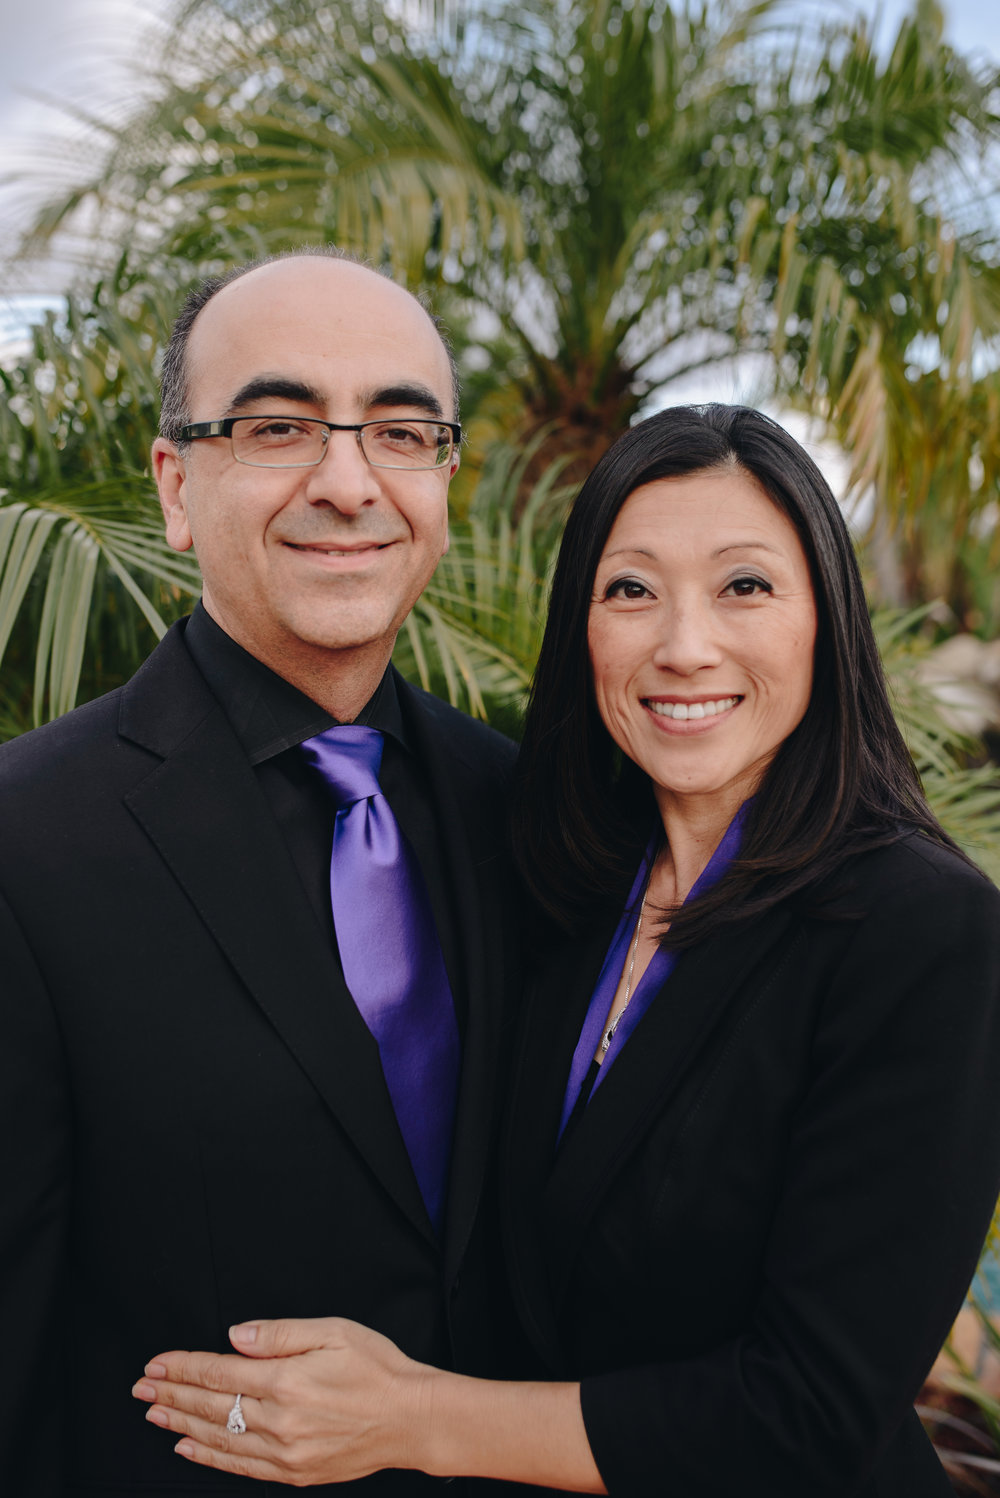 Dr. Patrick and Susan Javidan